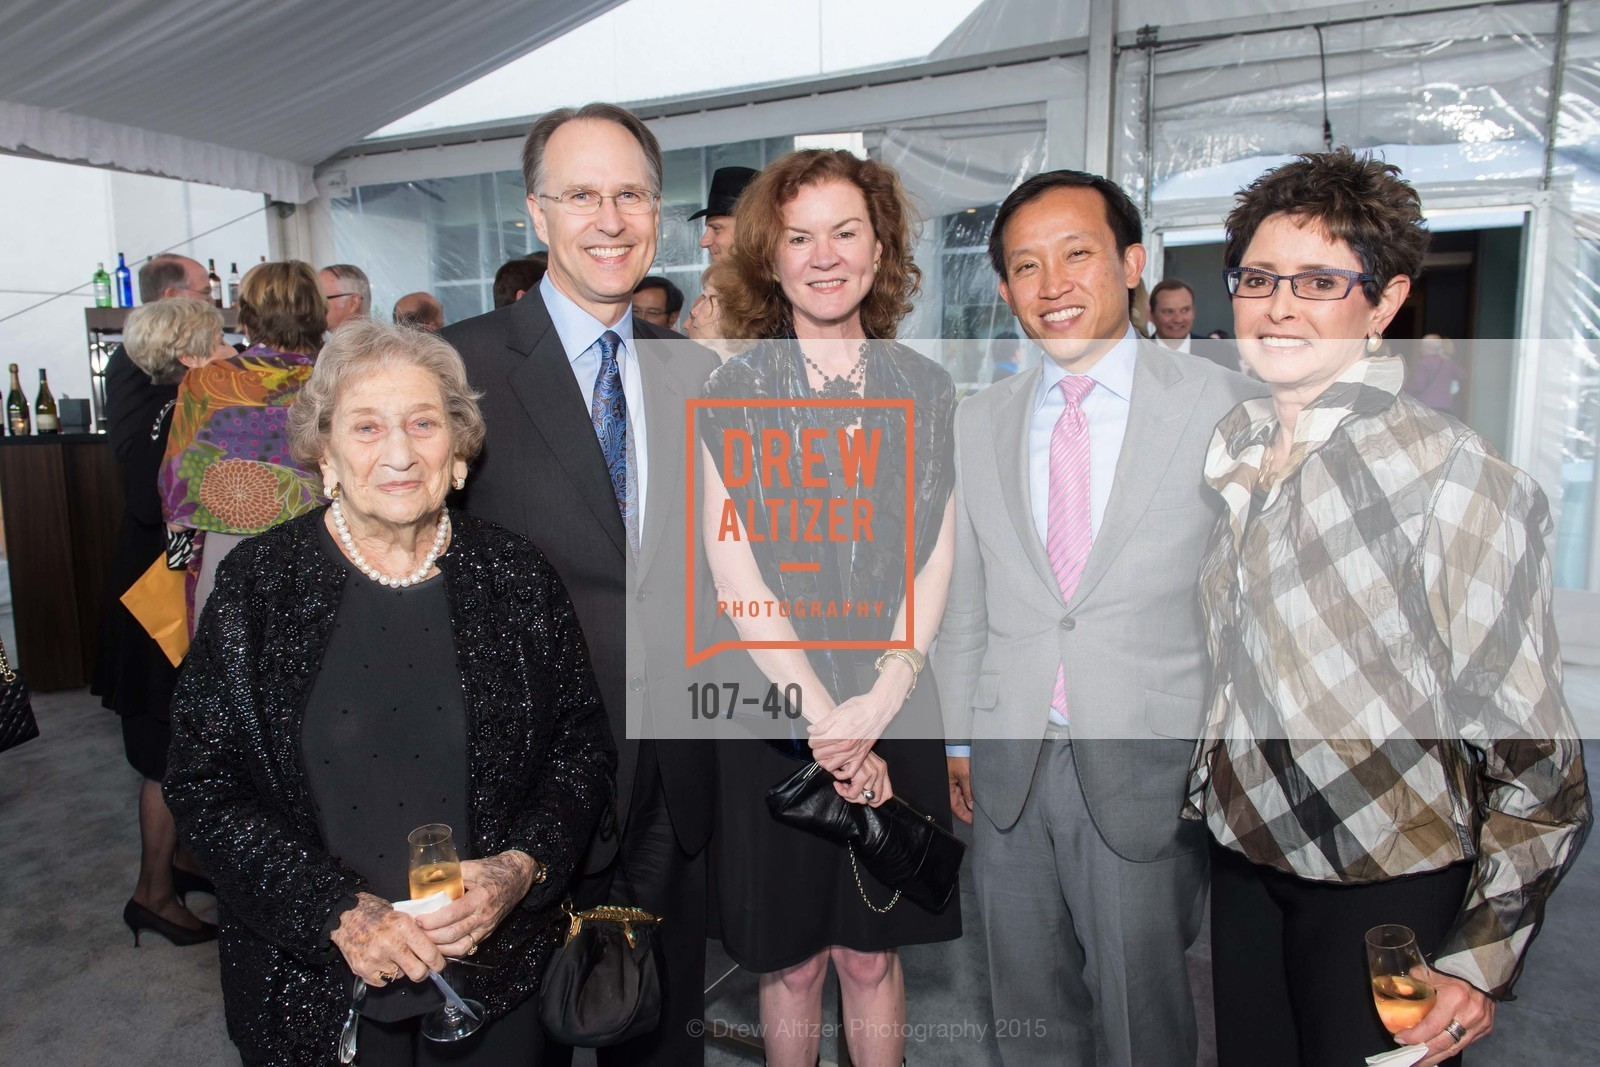 Rita Semel, Jeff Dialik, Katherine Munter, David Chiu, Jerilyn Gelt,  Catholic Charities Loaves & Fishes, St. Regis, April 18th, 2015,Drew Altizer, Drew Altizer Photography, full-service agency, private events, San Francisco photographer, photographer california